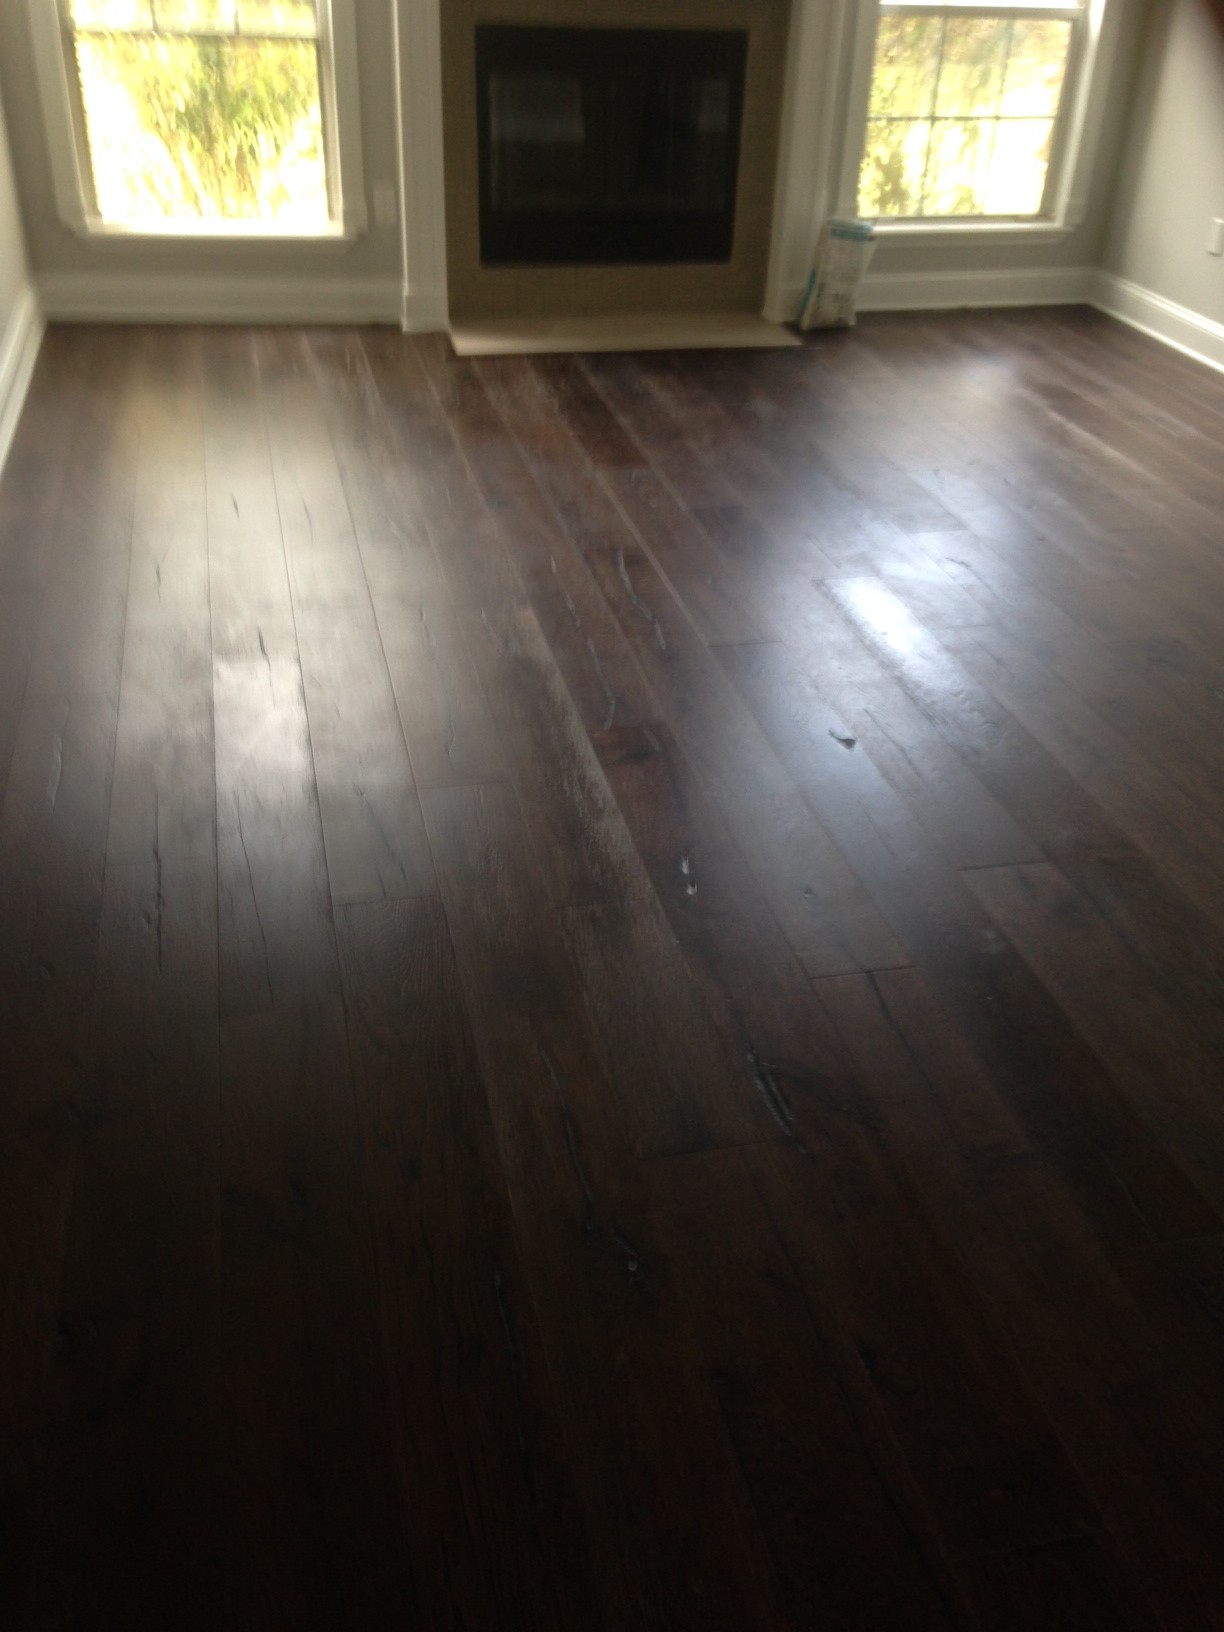 New European Oak Wood Flooring Installed